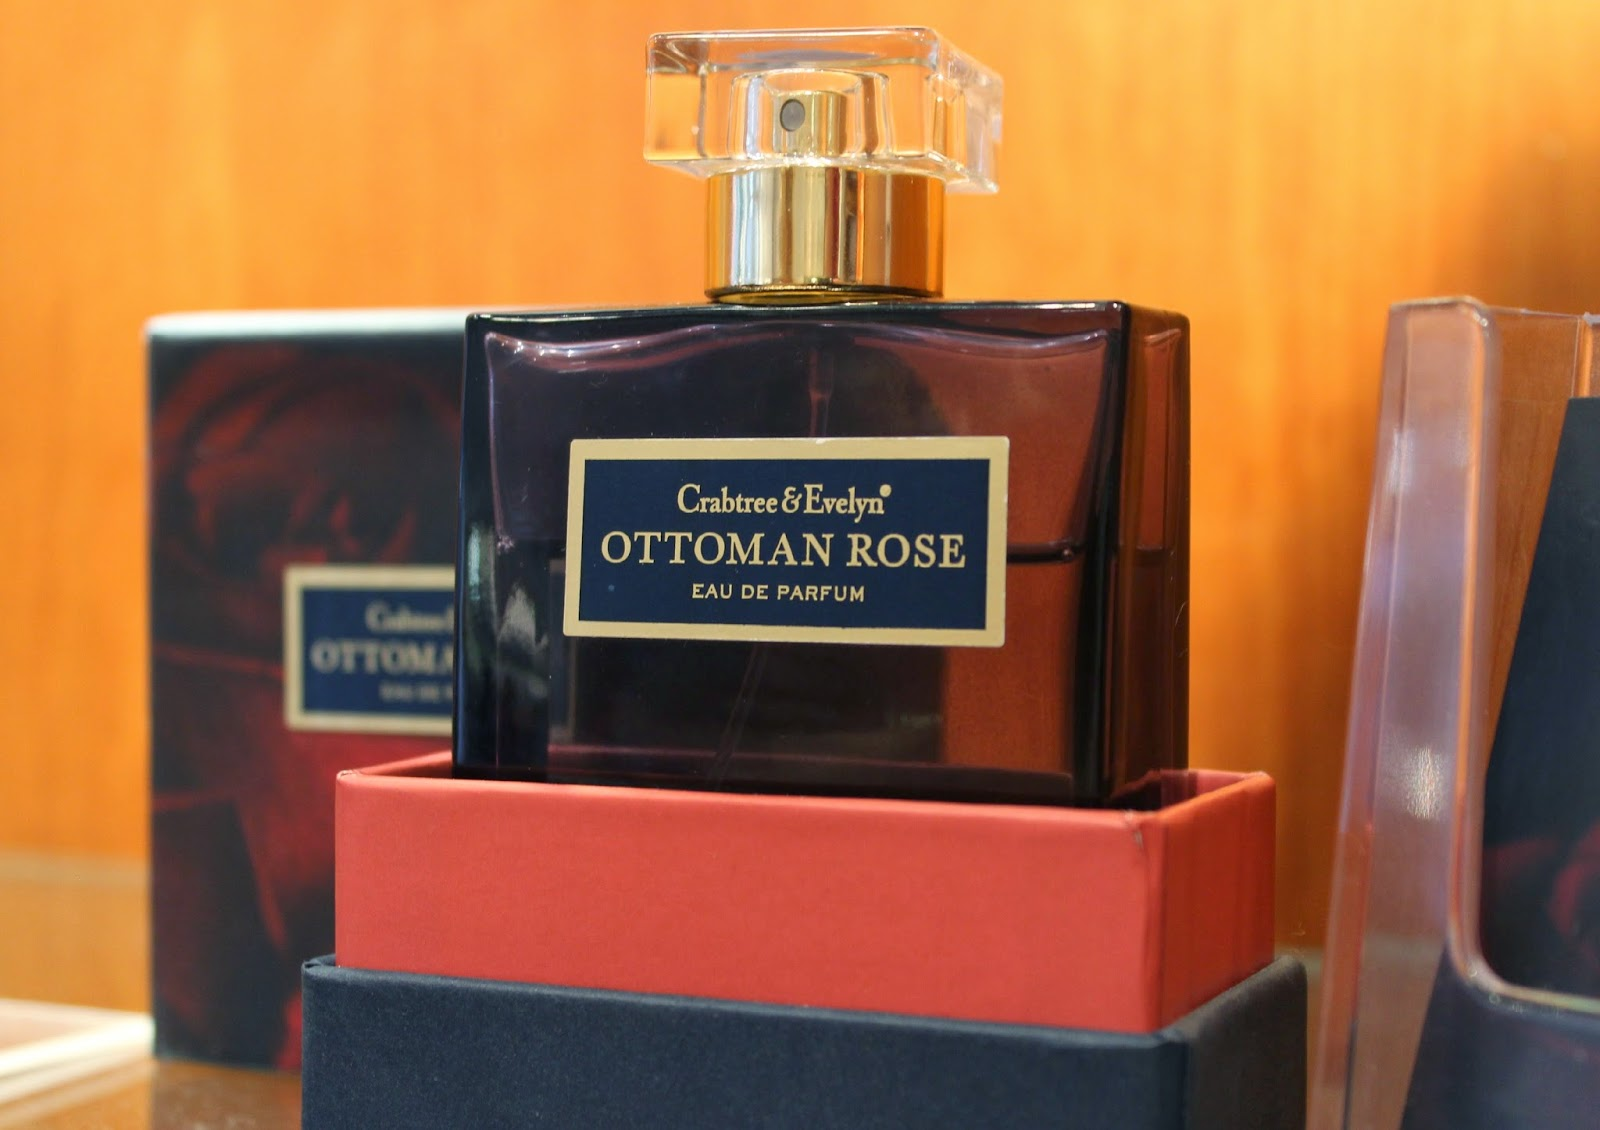 A picture of Crabtree & Evelyn Ottoman Rose Eau de Parfum